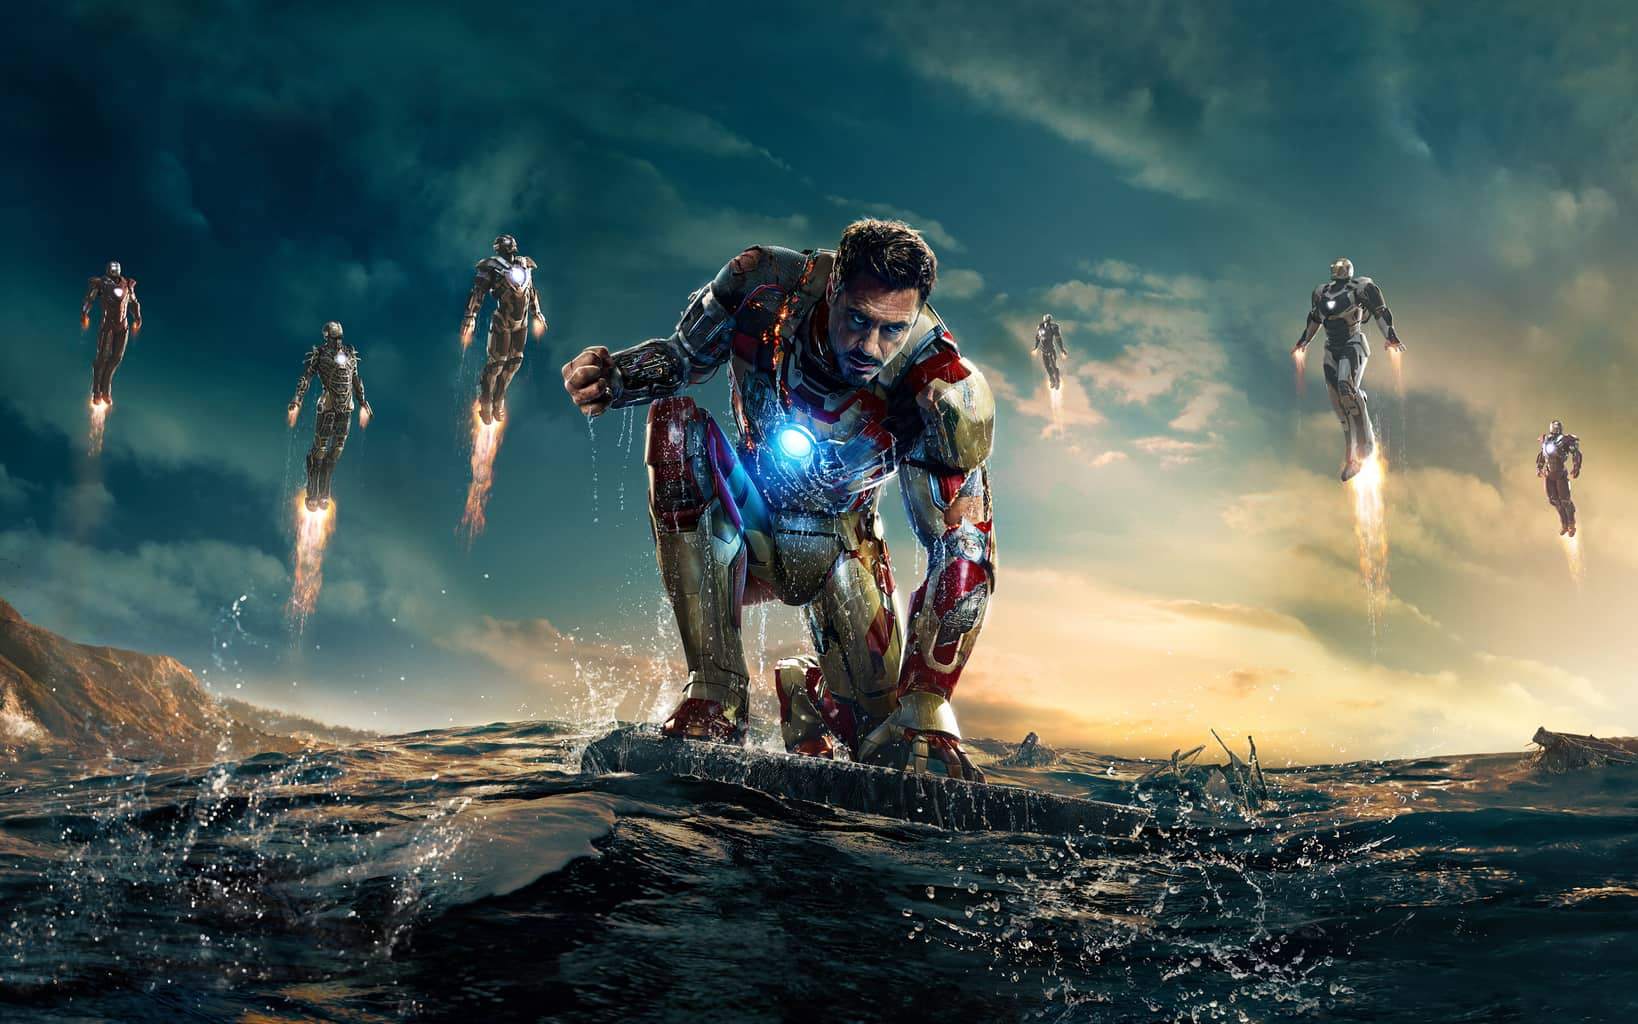 film reviews | movies | features | BRWC Review: Iron Man 3